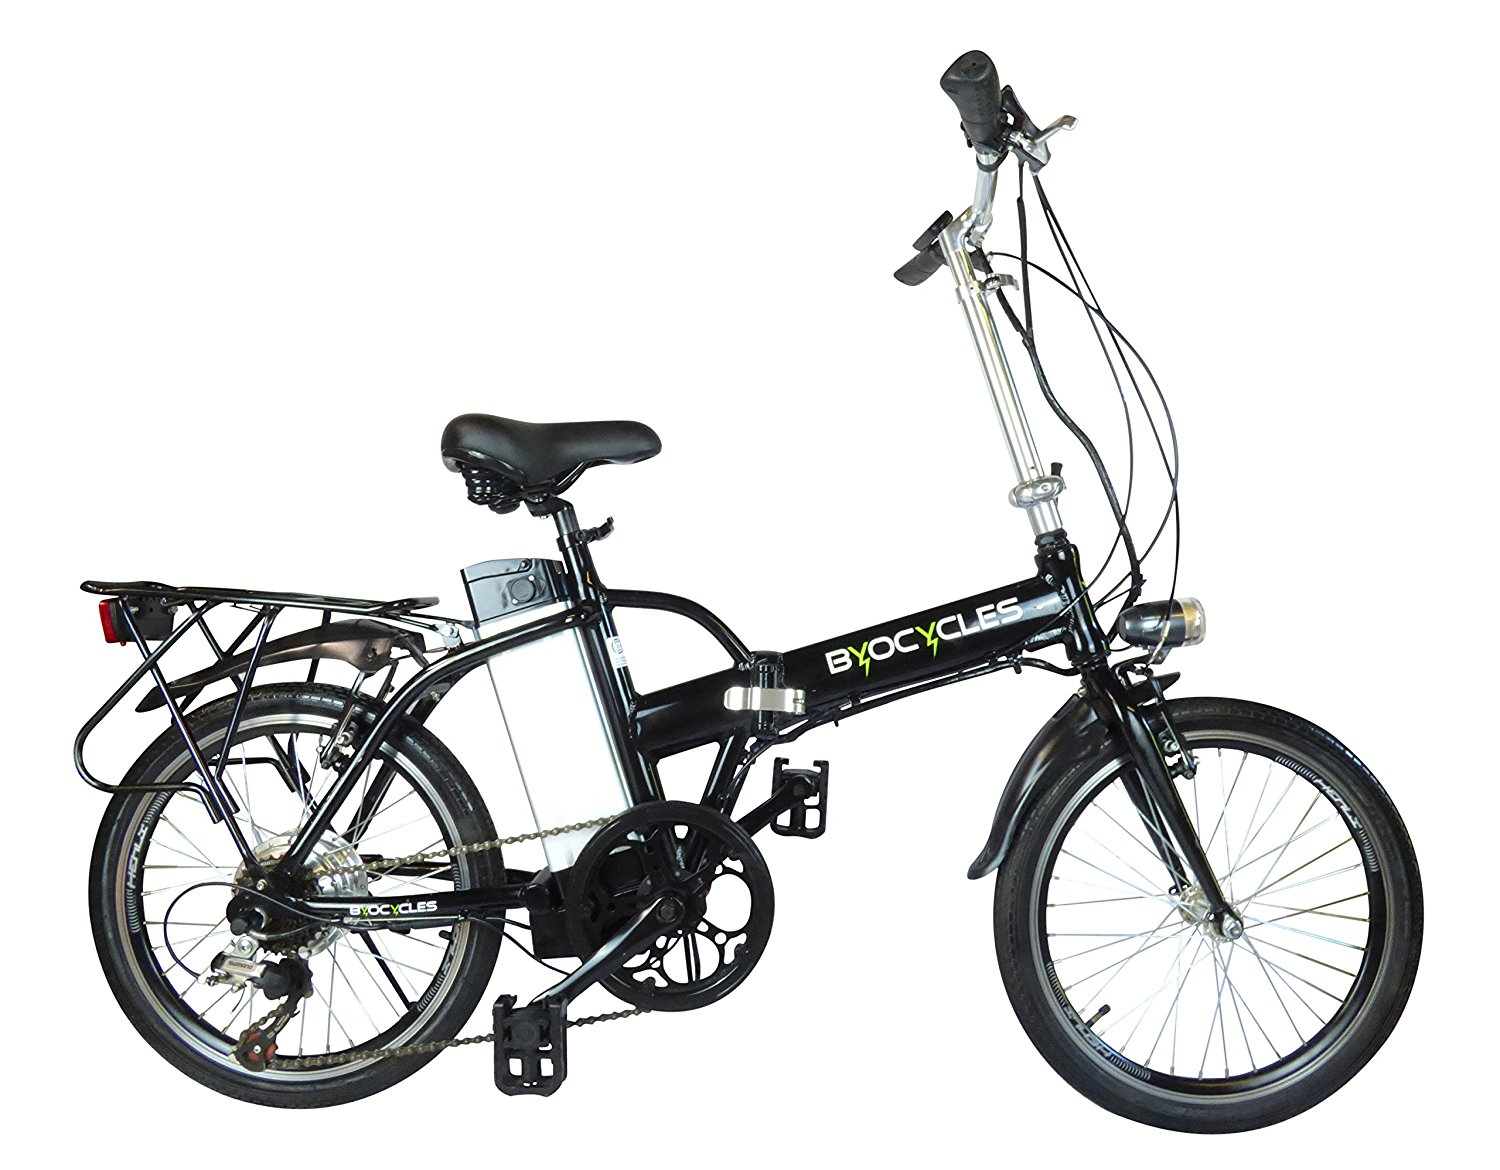 Byocycle City Speed 6 Speed Folding Electric Bike Bicycle